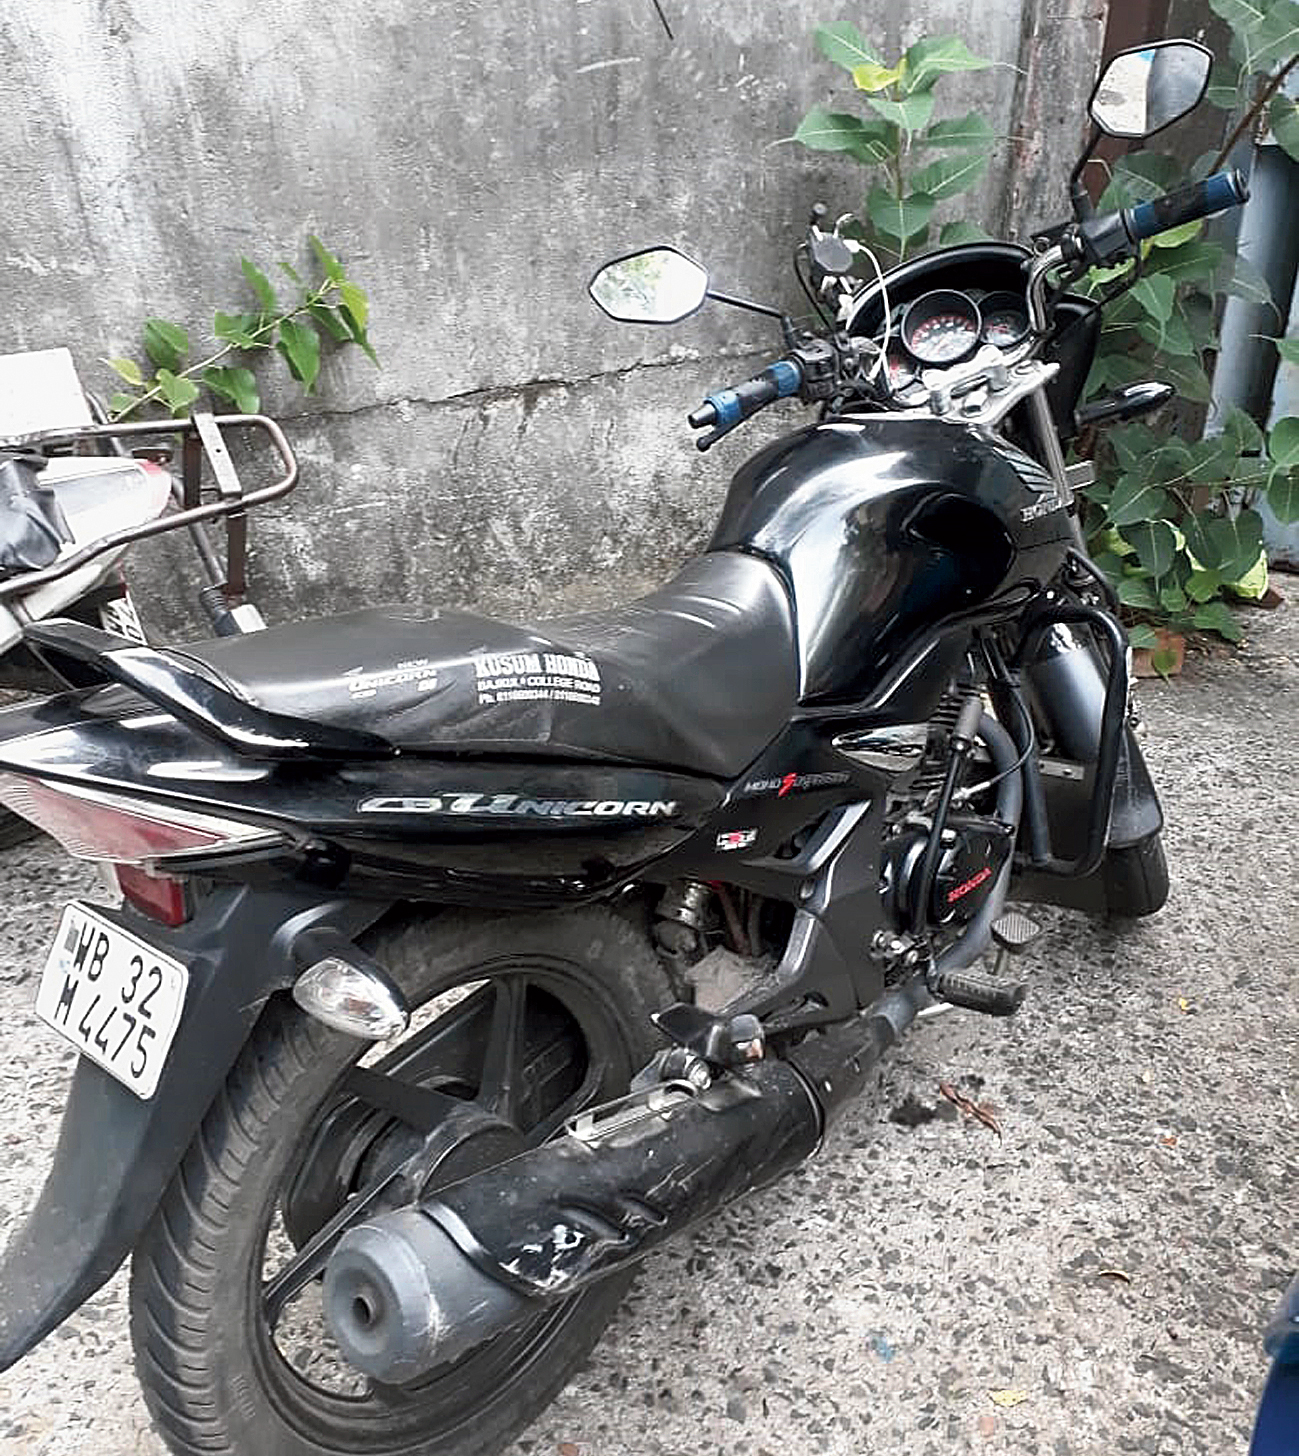 The motorcycle that Anukul Jana was riding when he was hit by a vehicle